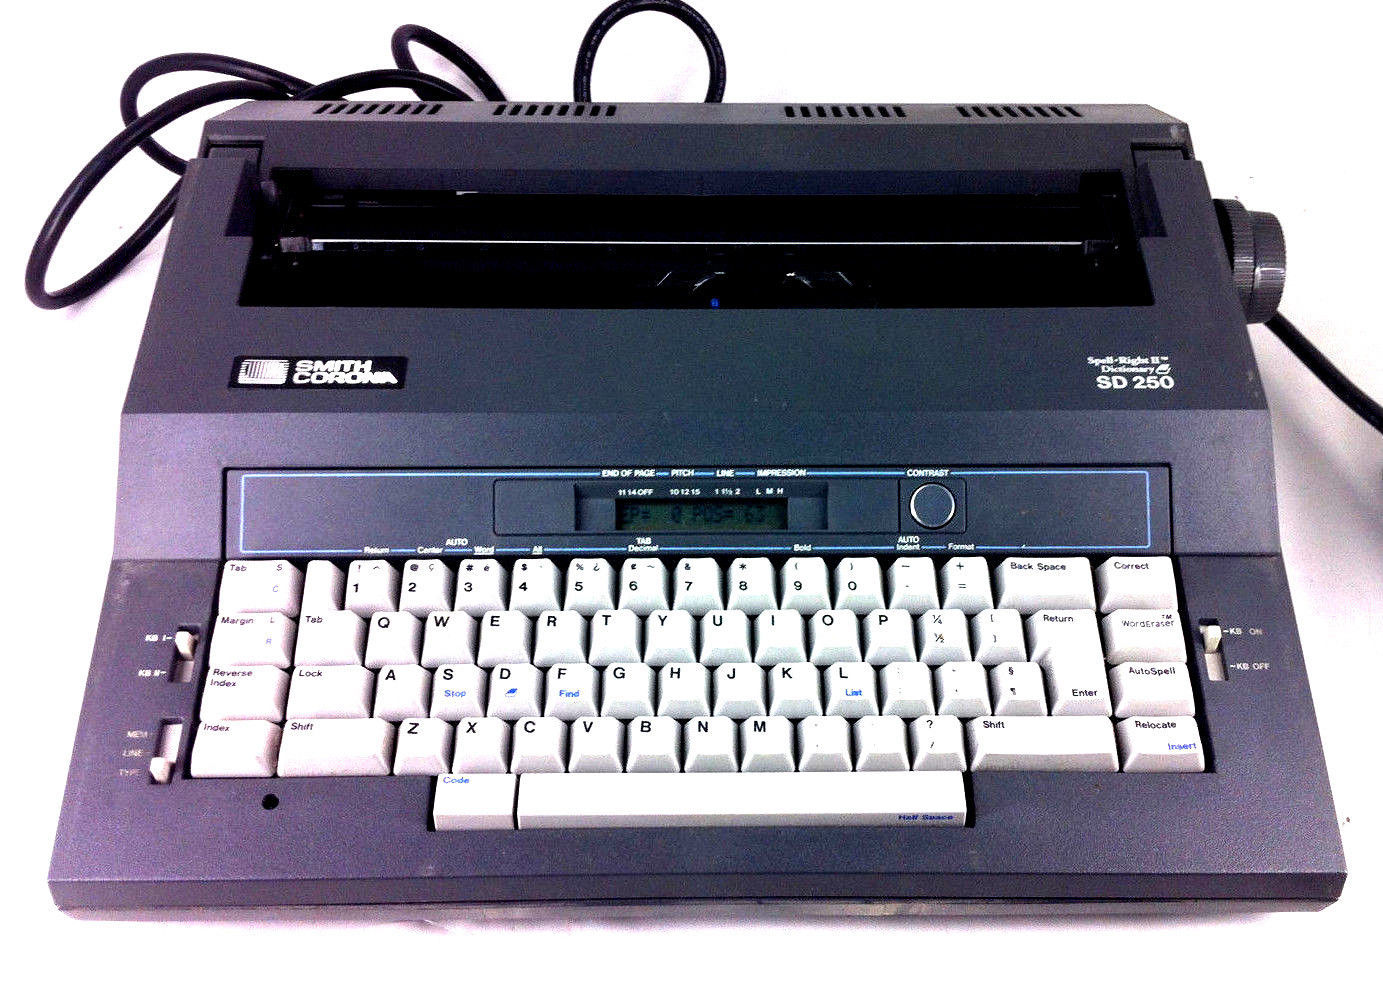 Smith Corona SD 250 Electric Typewriter Return Key Not Working